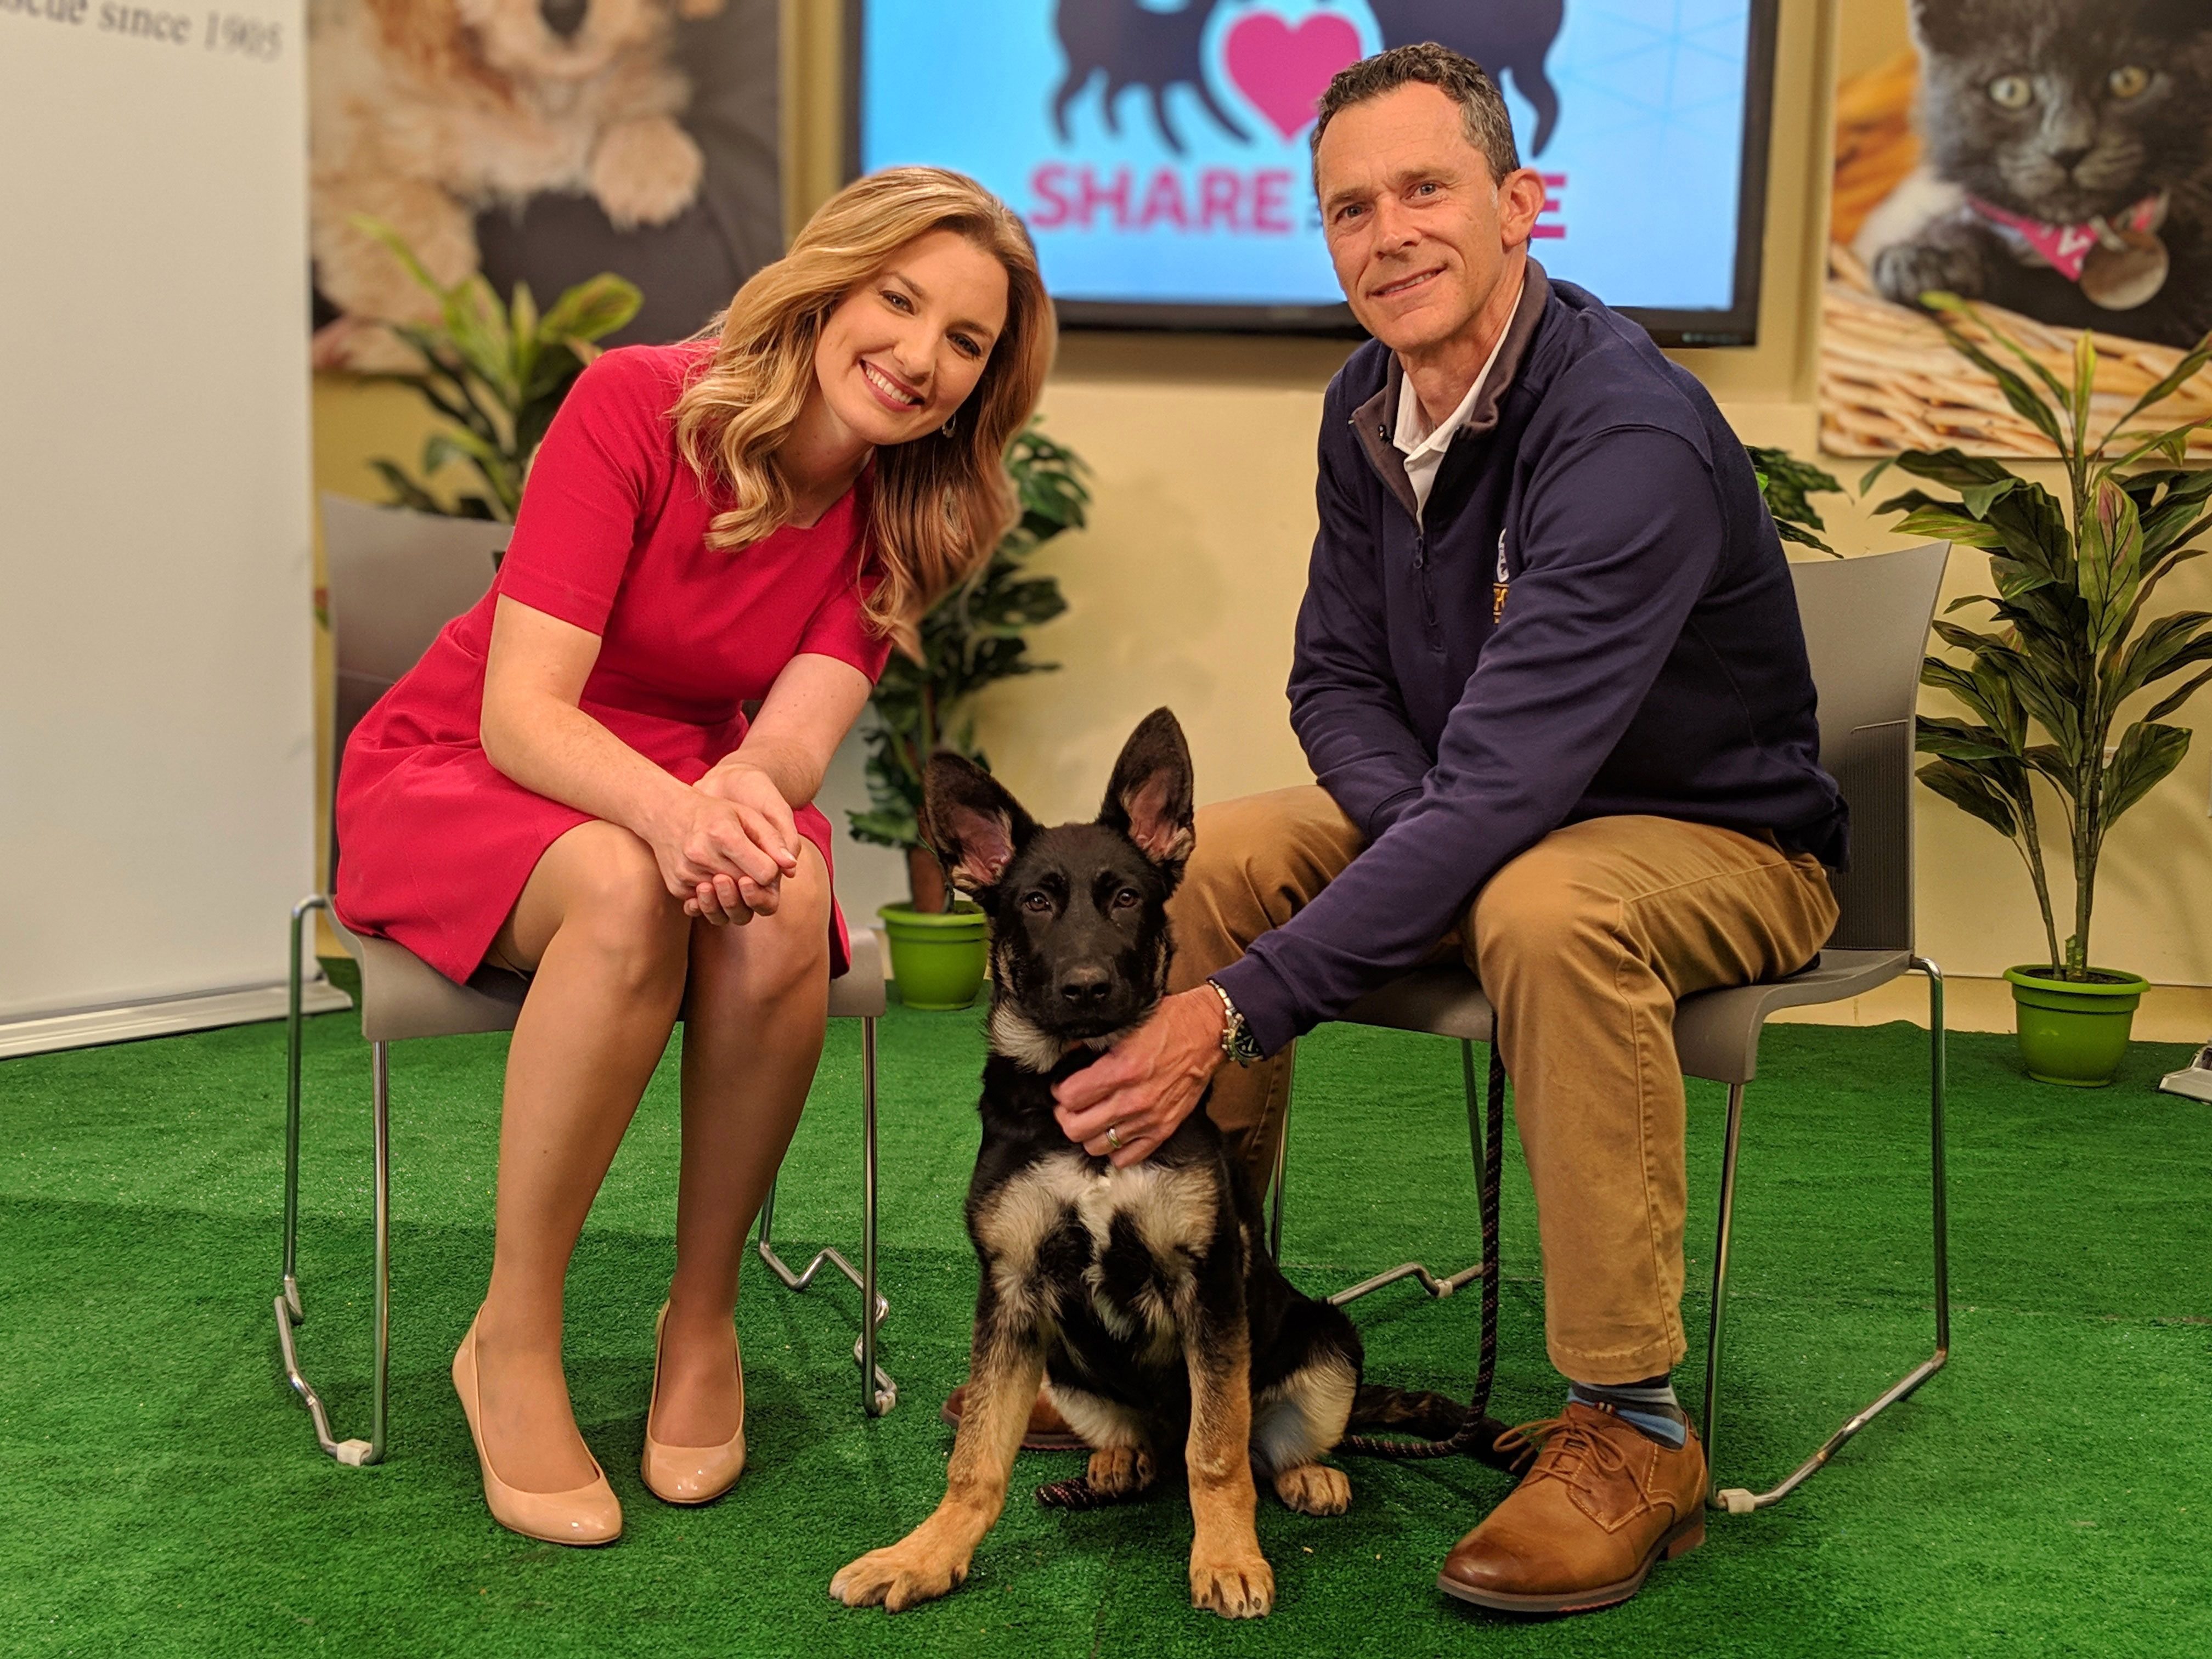 Share the Love Pet Telethon